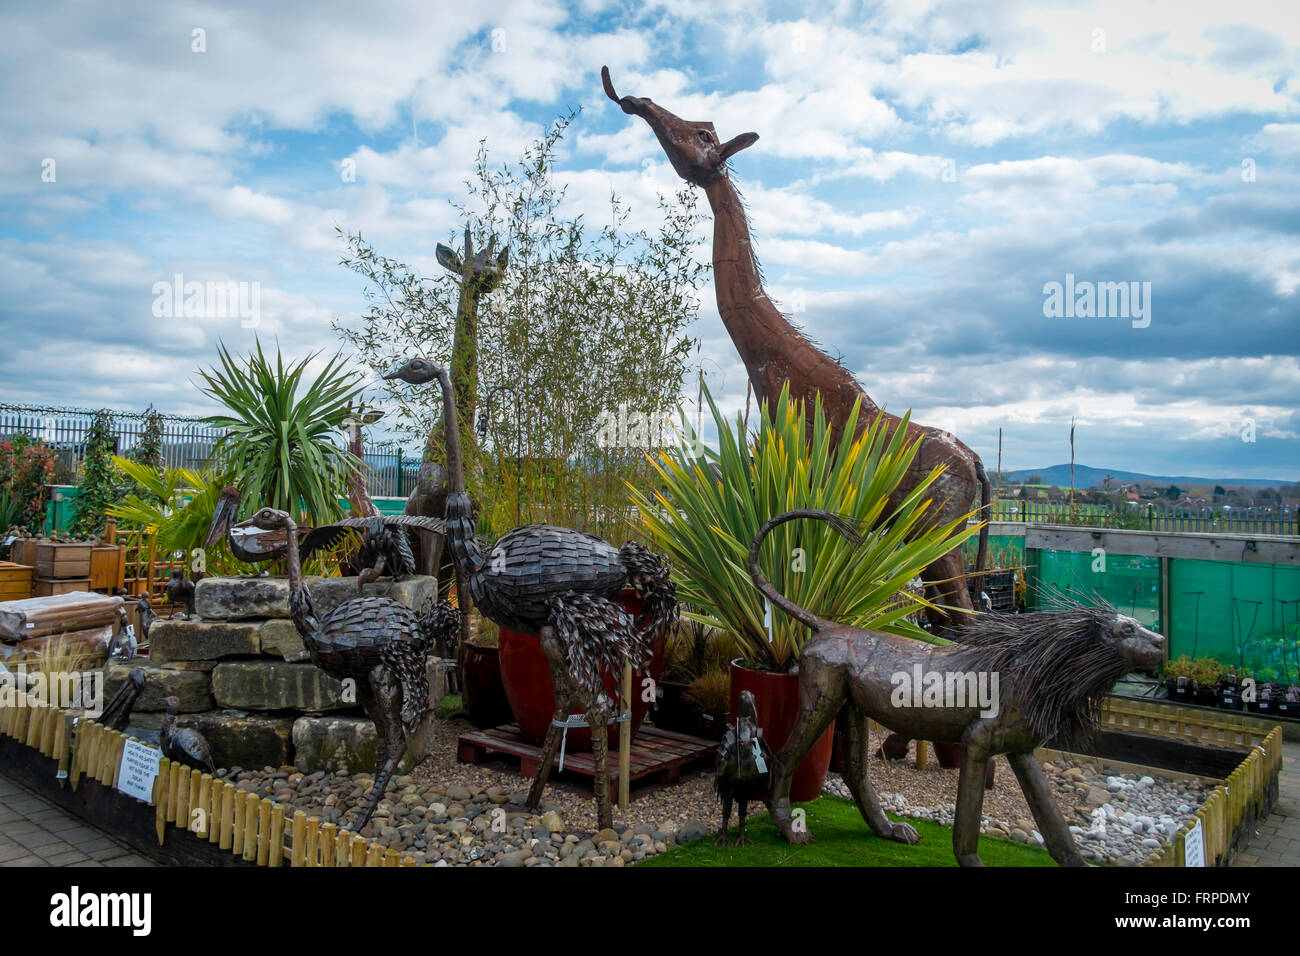 A Collection Of Garden Ornaments Large Steel Giraffes Lions And Ostriches  Statues In A Suburban Garden